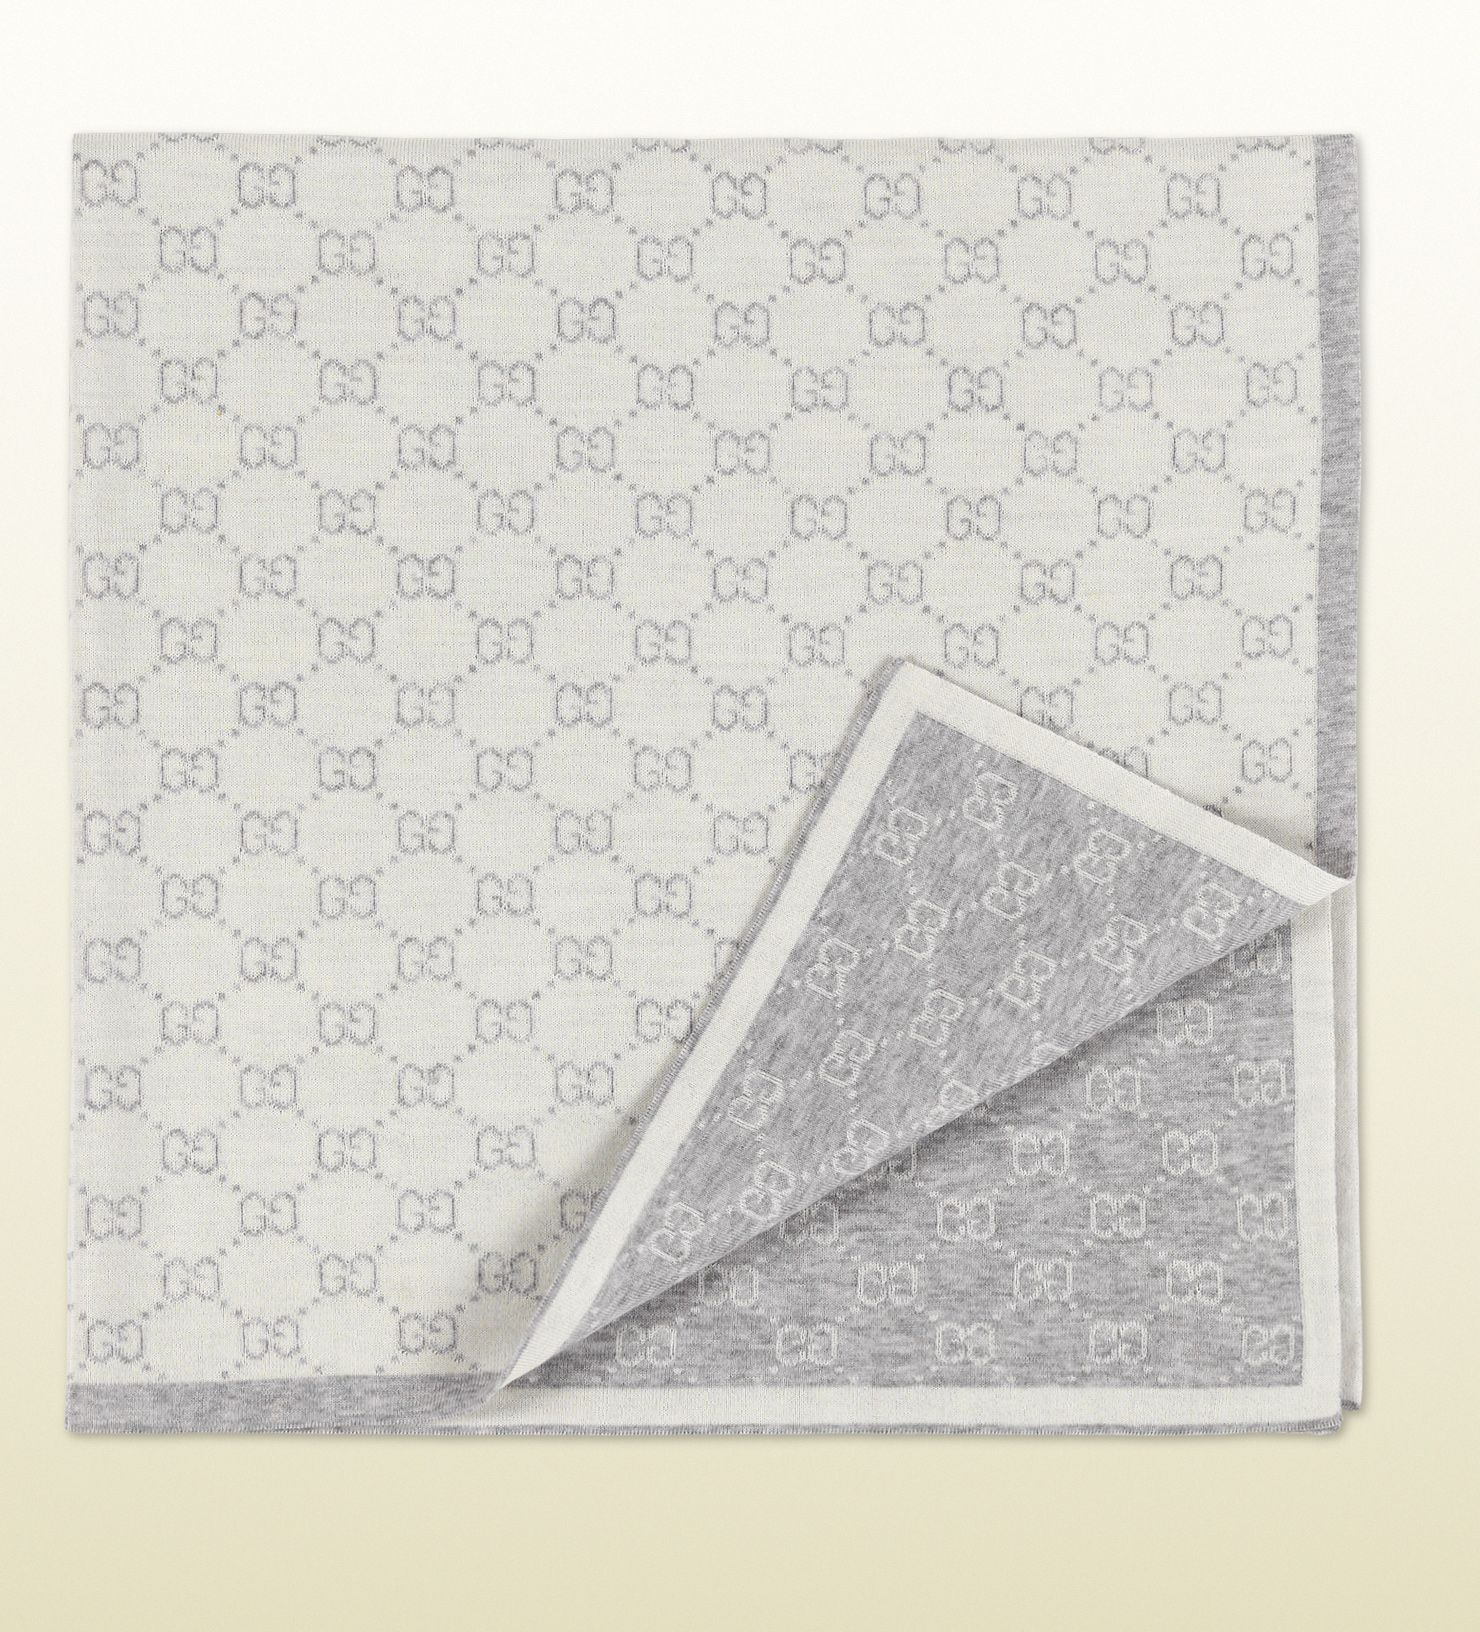 Gucci Mini GG pattern wool baby blanket | Generation Lux